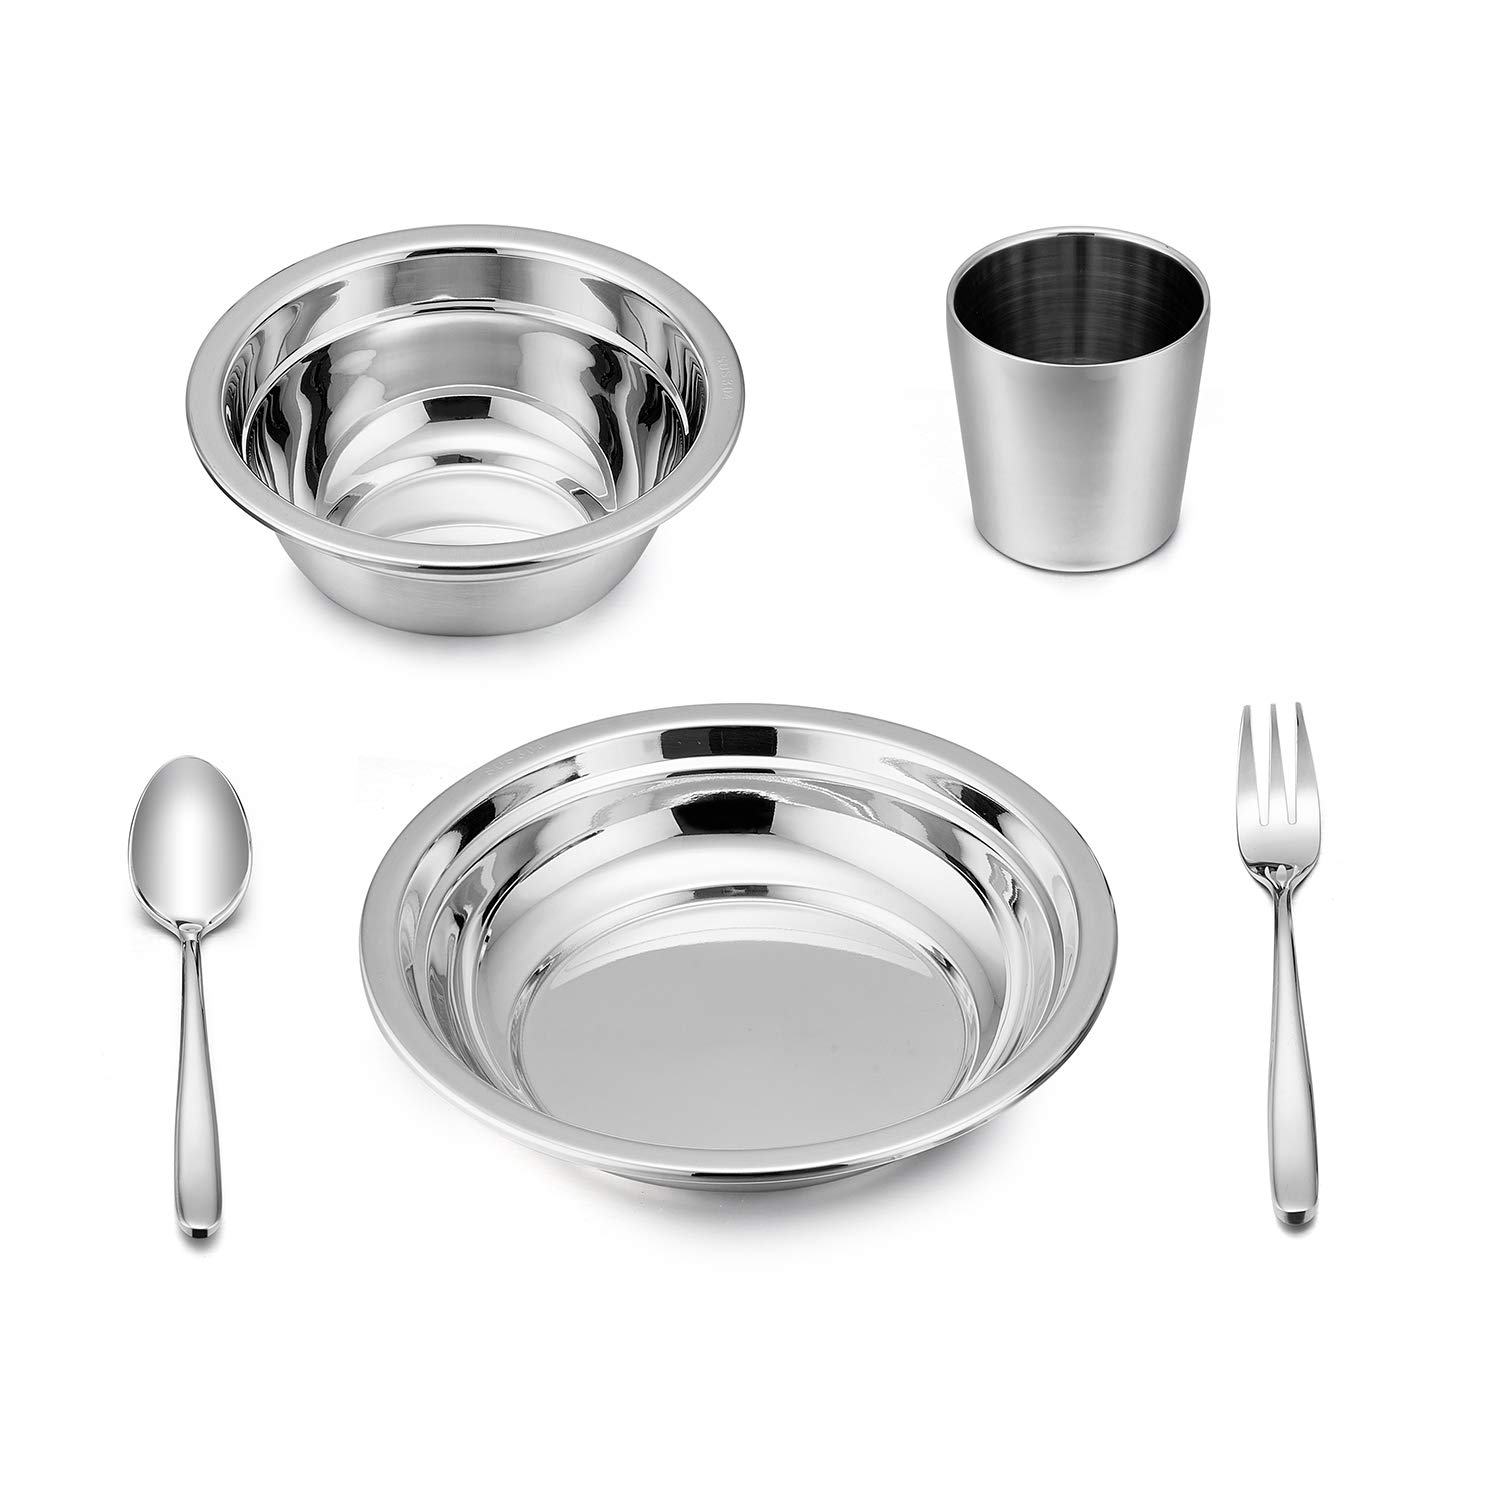 LIANYU 5-Piece Toddler Kids Dinnerware Set, Stainless Steel Childrens Dinnerware Include Plate/Bowl / Cup/Spoon / Fork, Eco Friendly & BPA Free - Dishwasher Safe